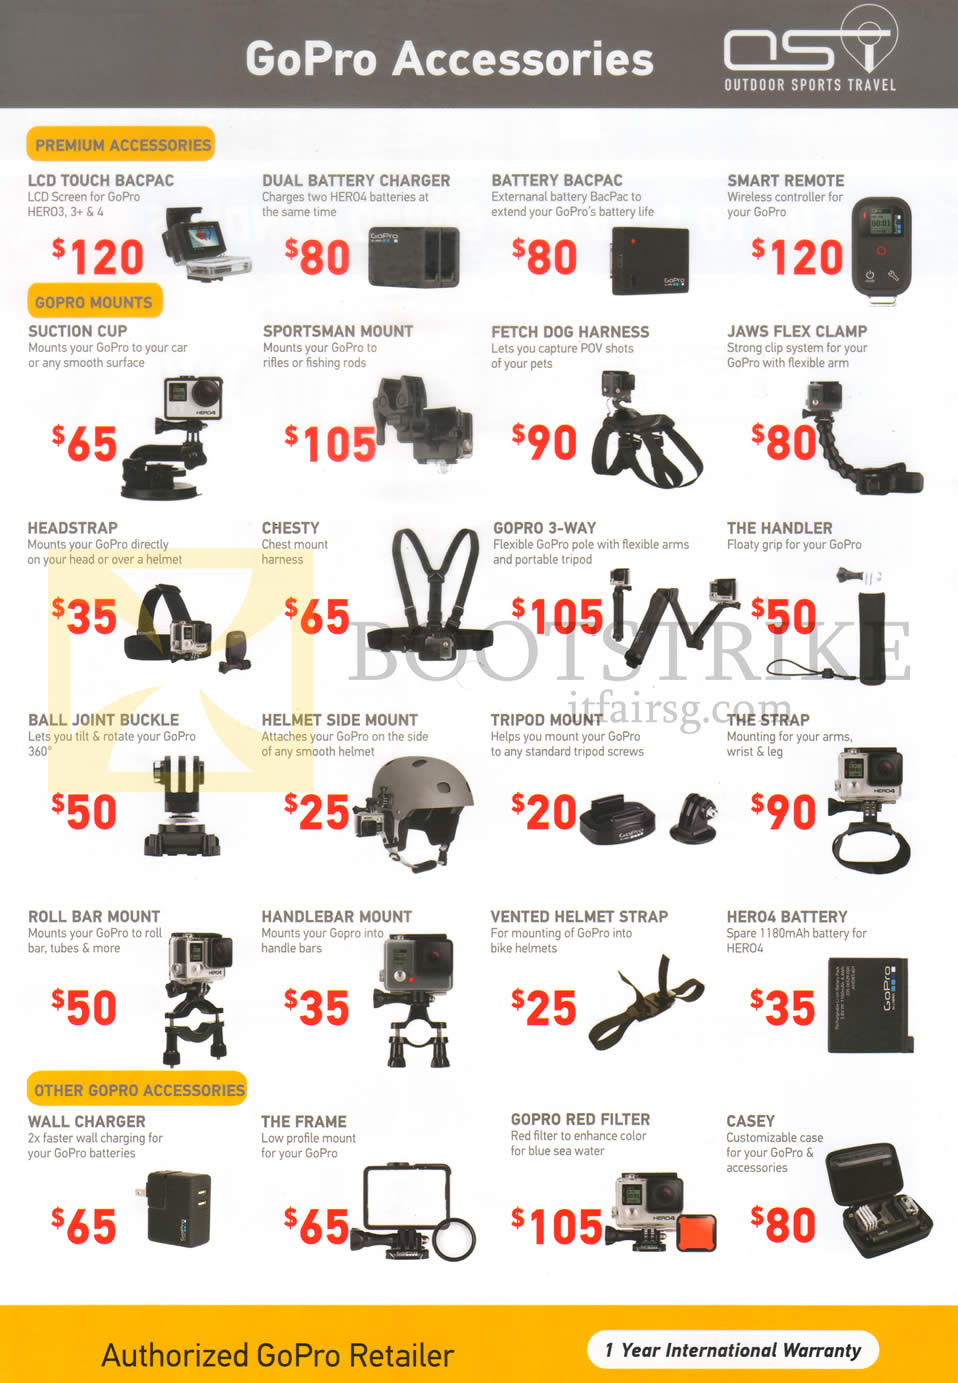 SITEX 2015 price list image brochure of OST GoPro Accessories GoPro Mounts, Premium, Other Gopro Accessories, Bacpac, Remote, Buckle, Frame, Helmet Strap, Battery, Strap, Casey, Filter